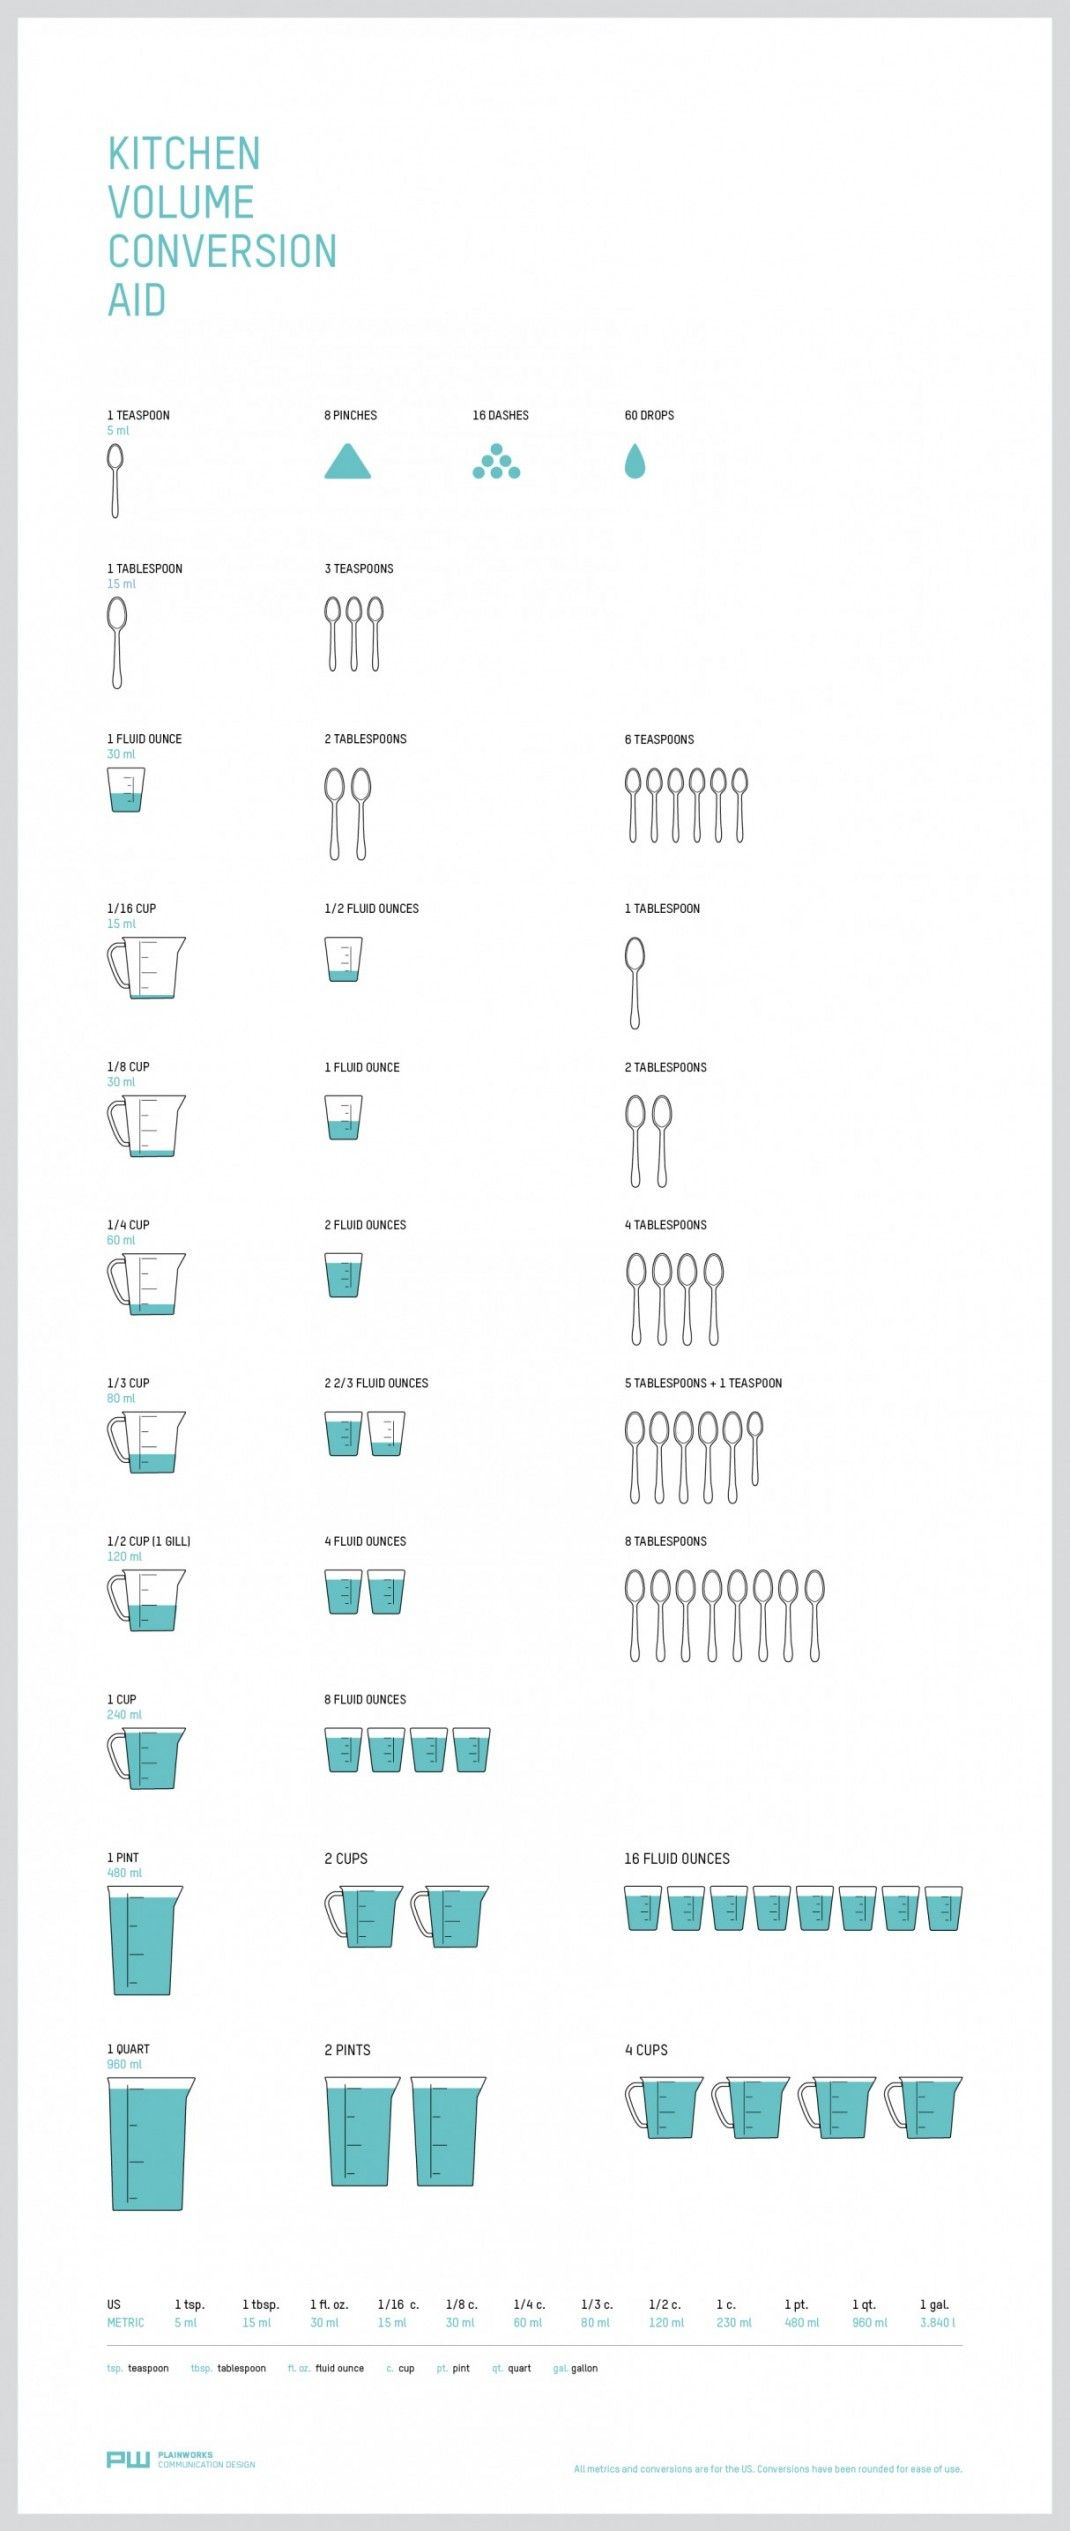 Kitchen Volume Conversion Aid Infographic With Images